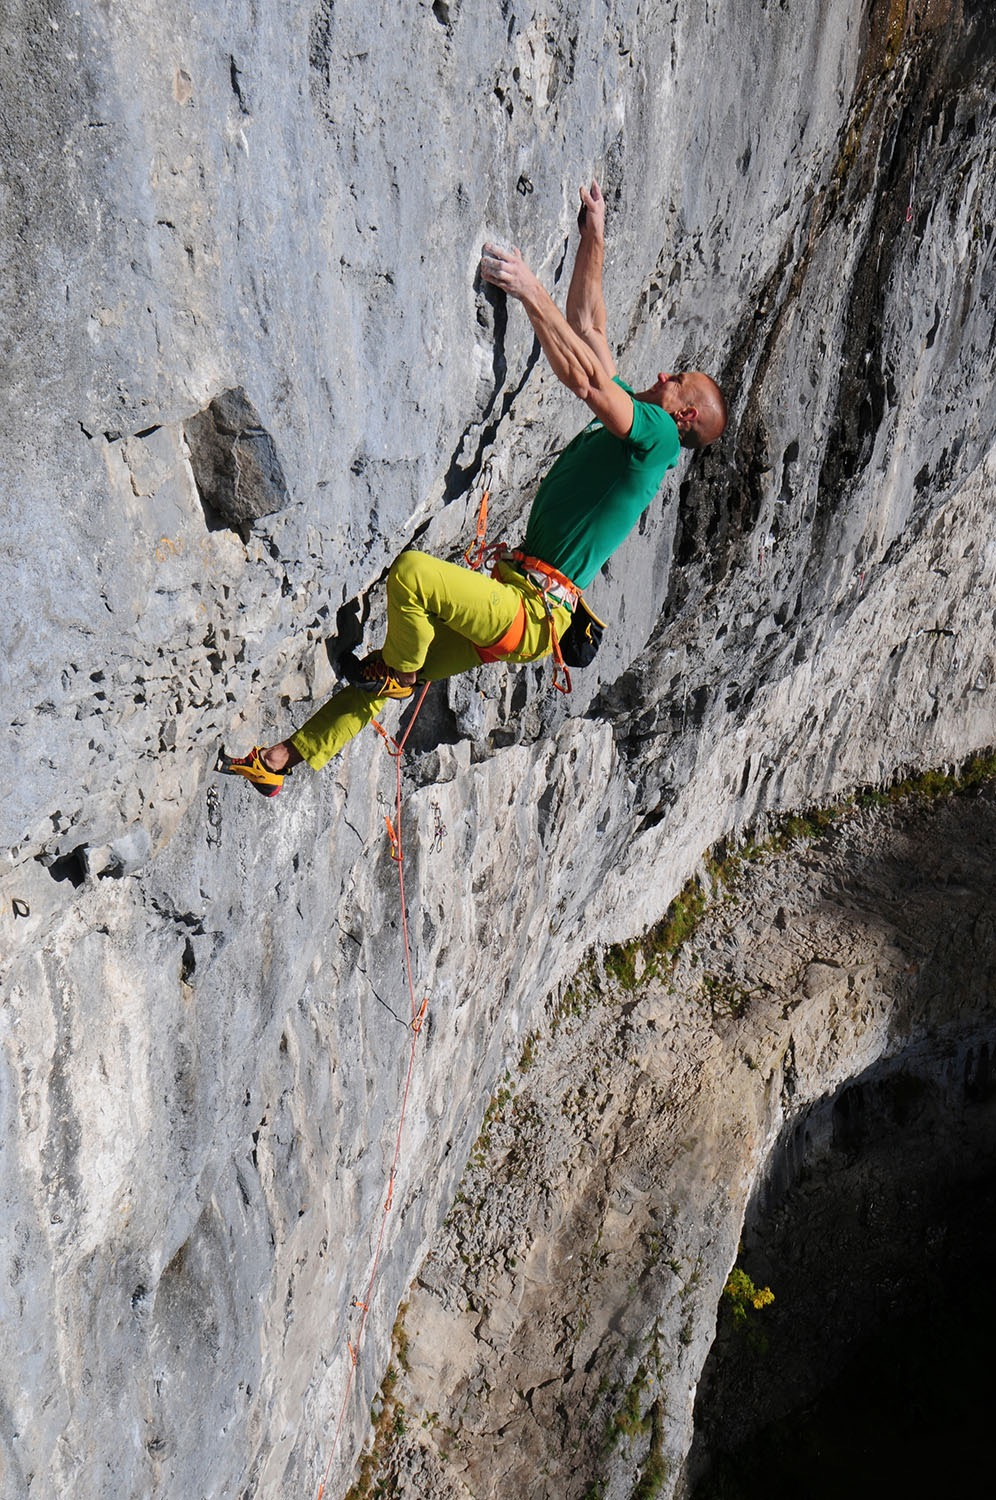 Sabotage 8c+/9a, Malham, UK. First ascent in 2016.  Photo: Ian Parnell